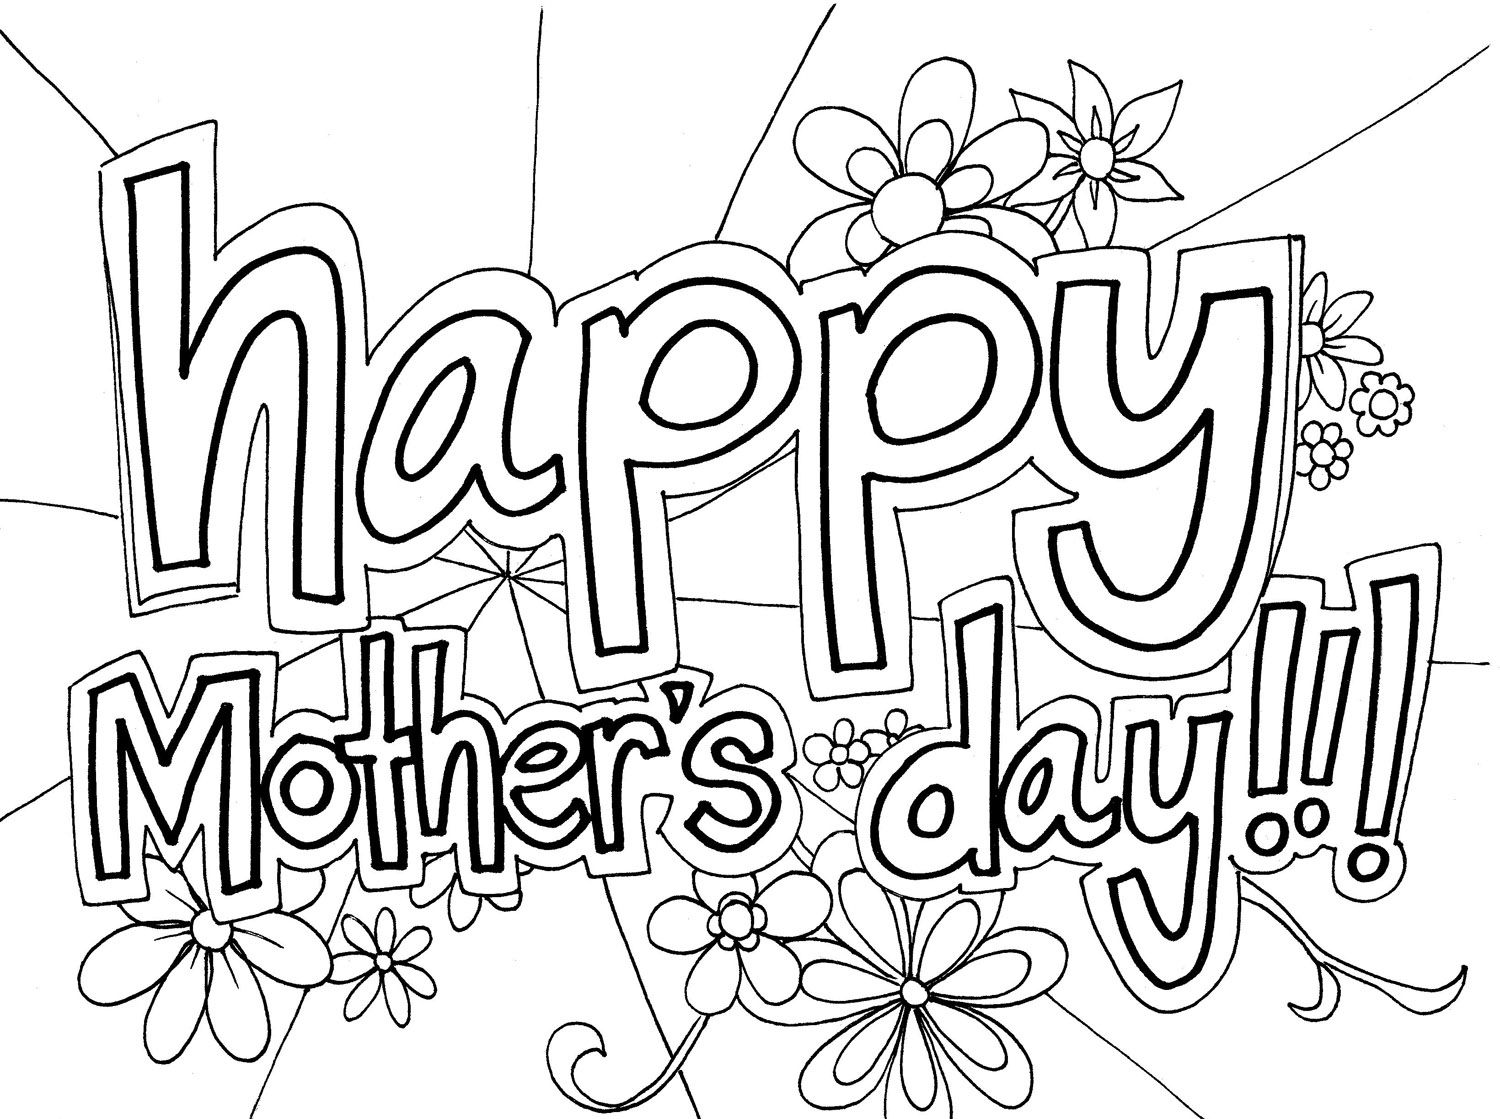 christian mothers day coloring pages free large images - Mothers Day Coloring Pages